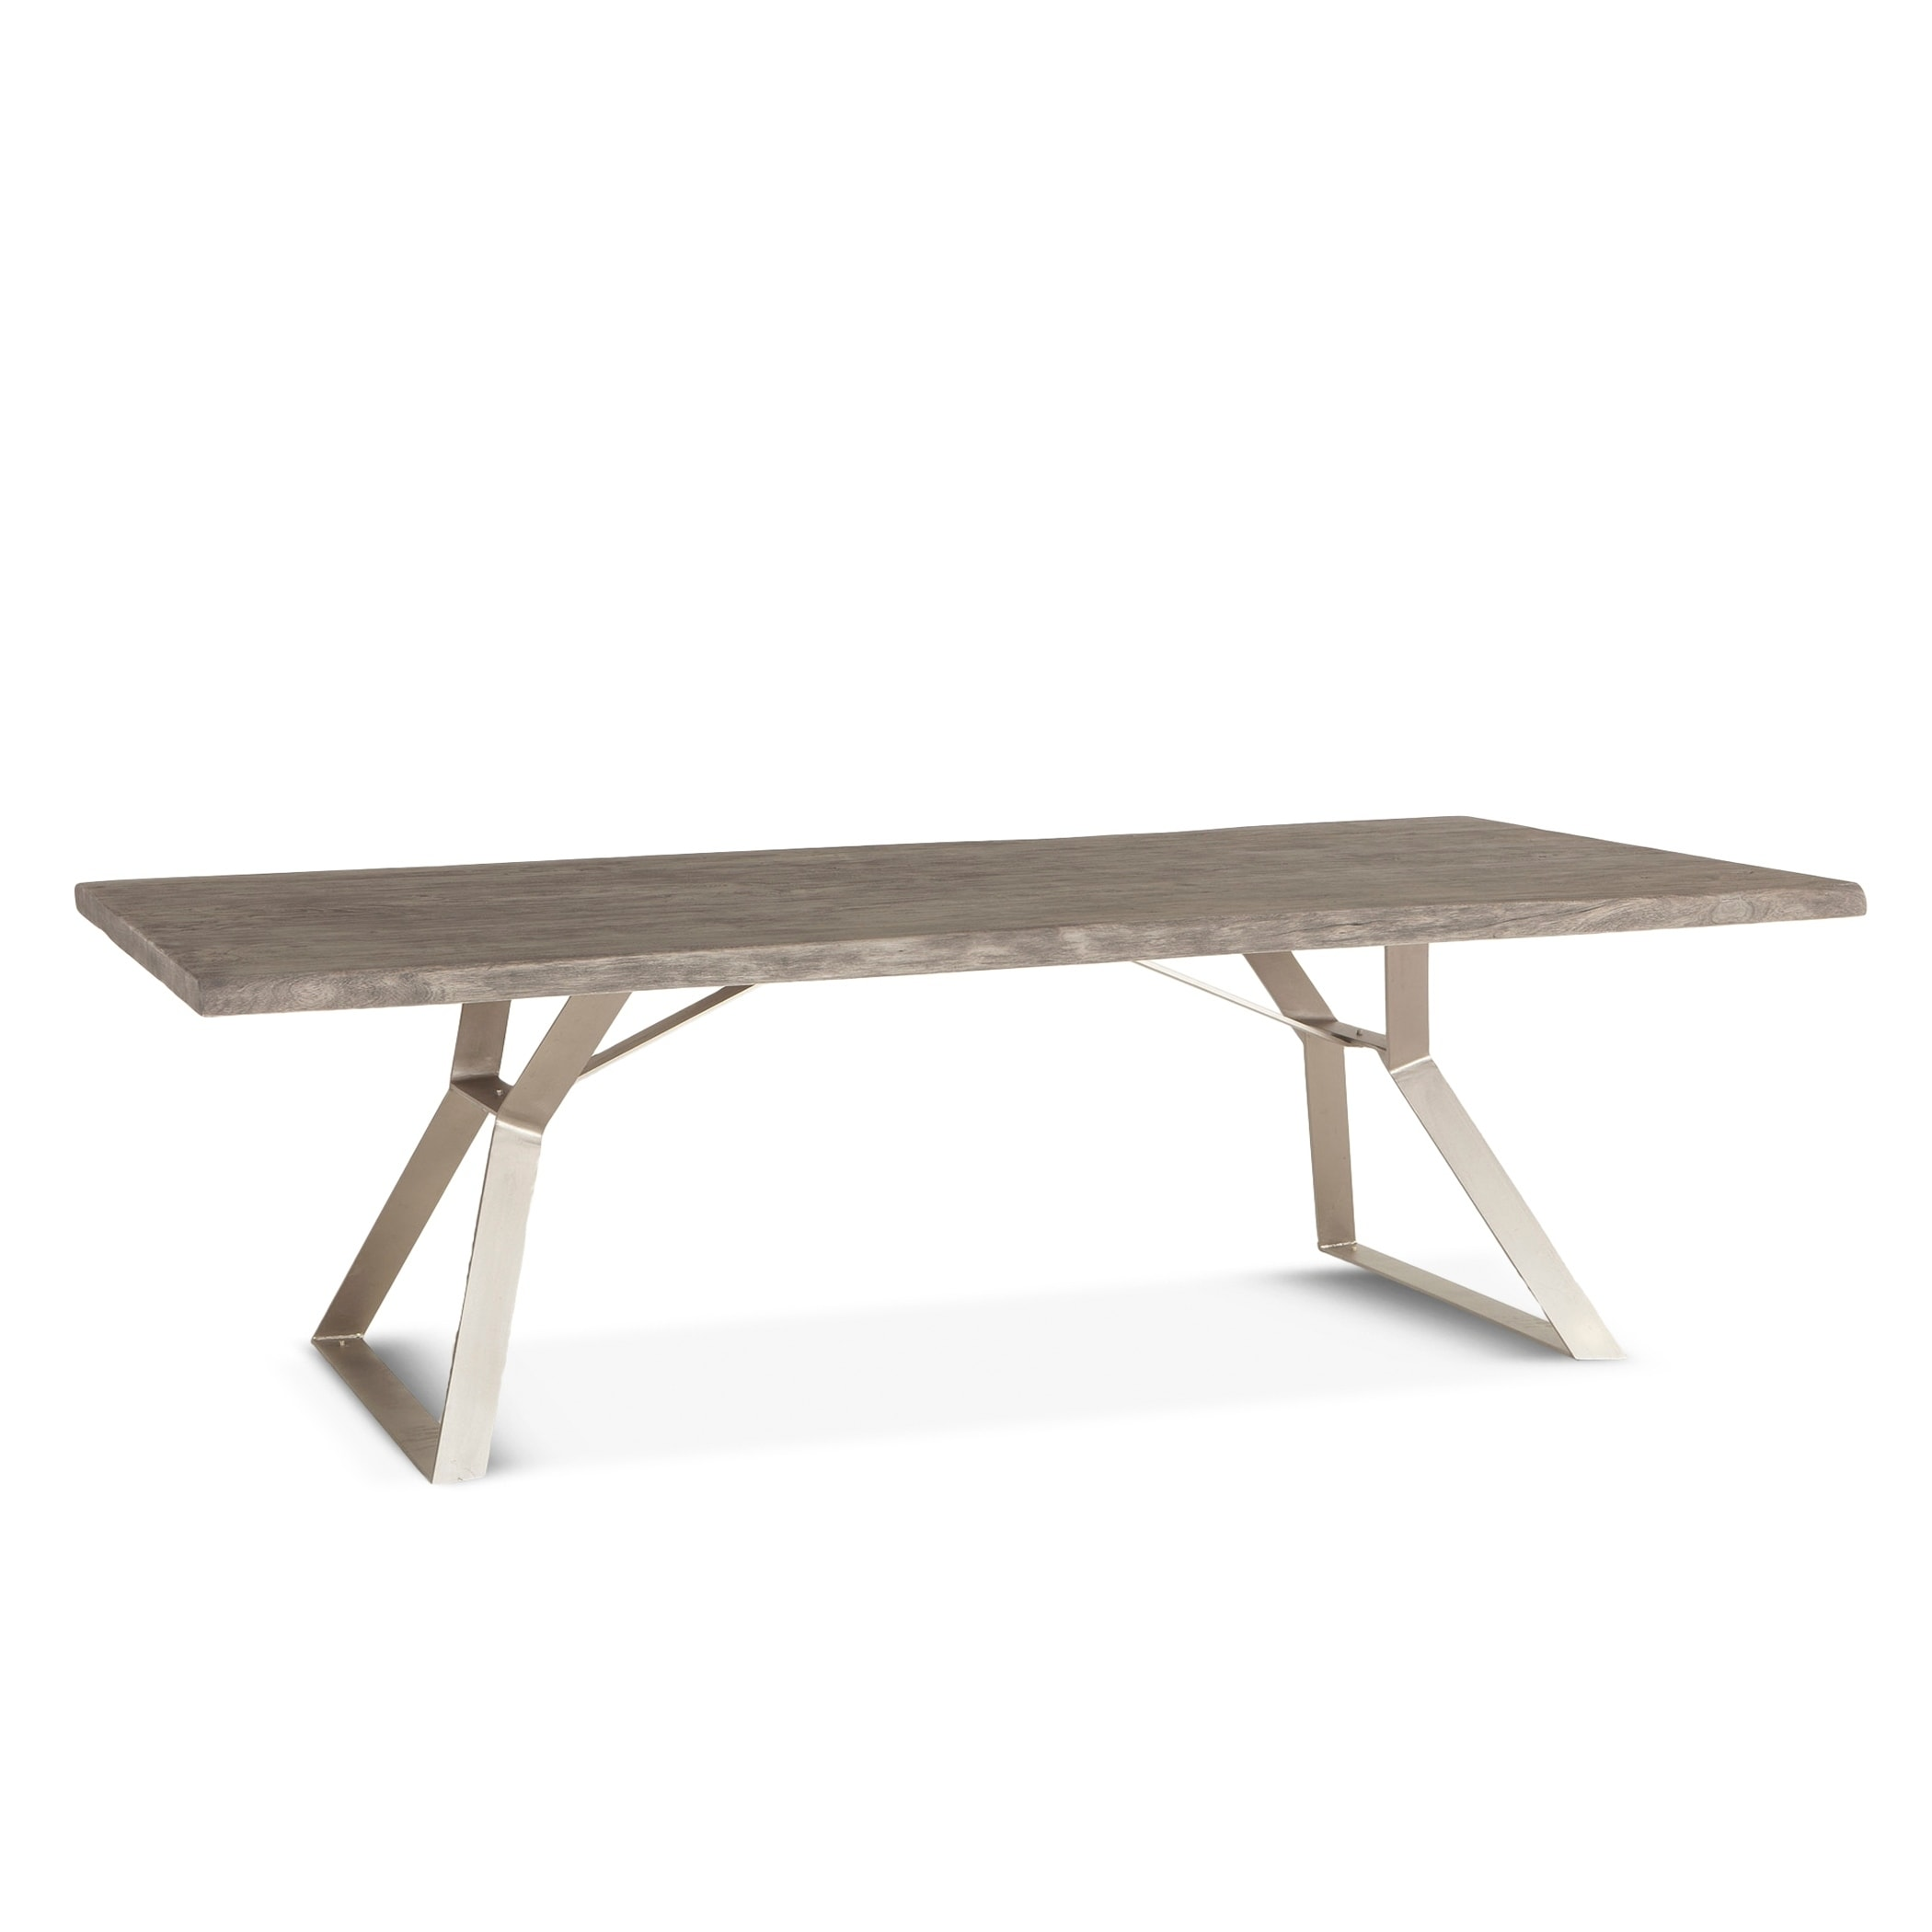 Shop nottingham 106 inch weathered gray acacia wood dining table grey free shipping today overstock com 26971069